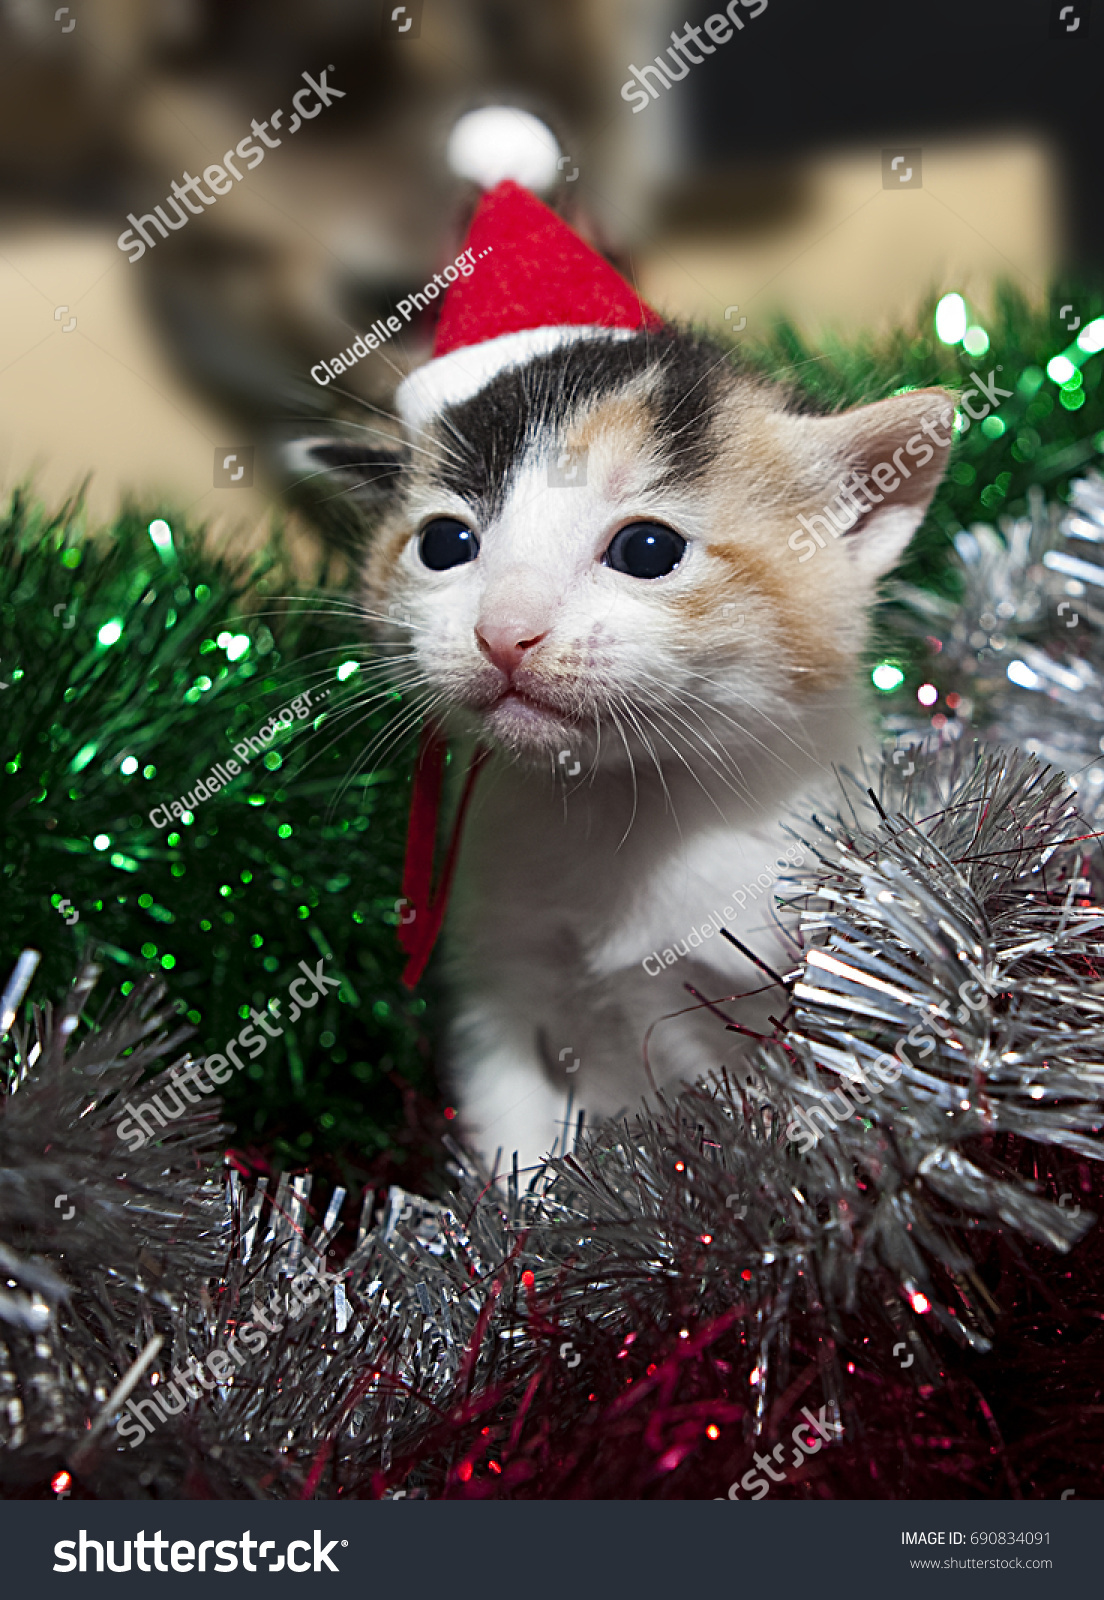 Kitten Christmas Hat Stock Photo (Edit Now) 690834091 - Shutterstock